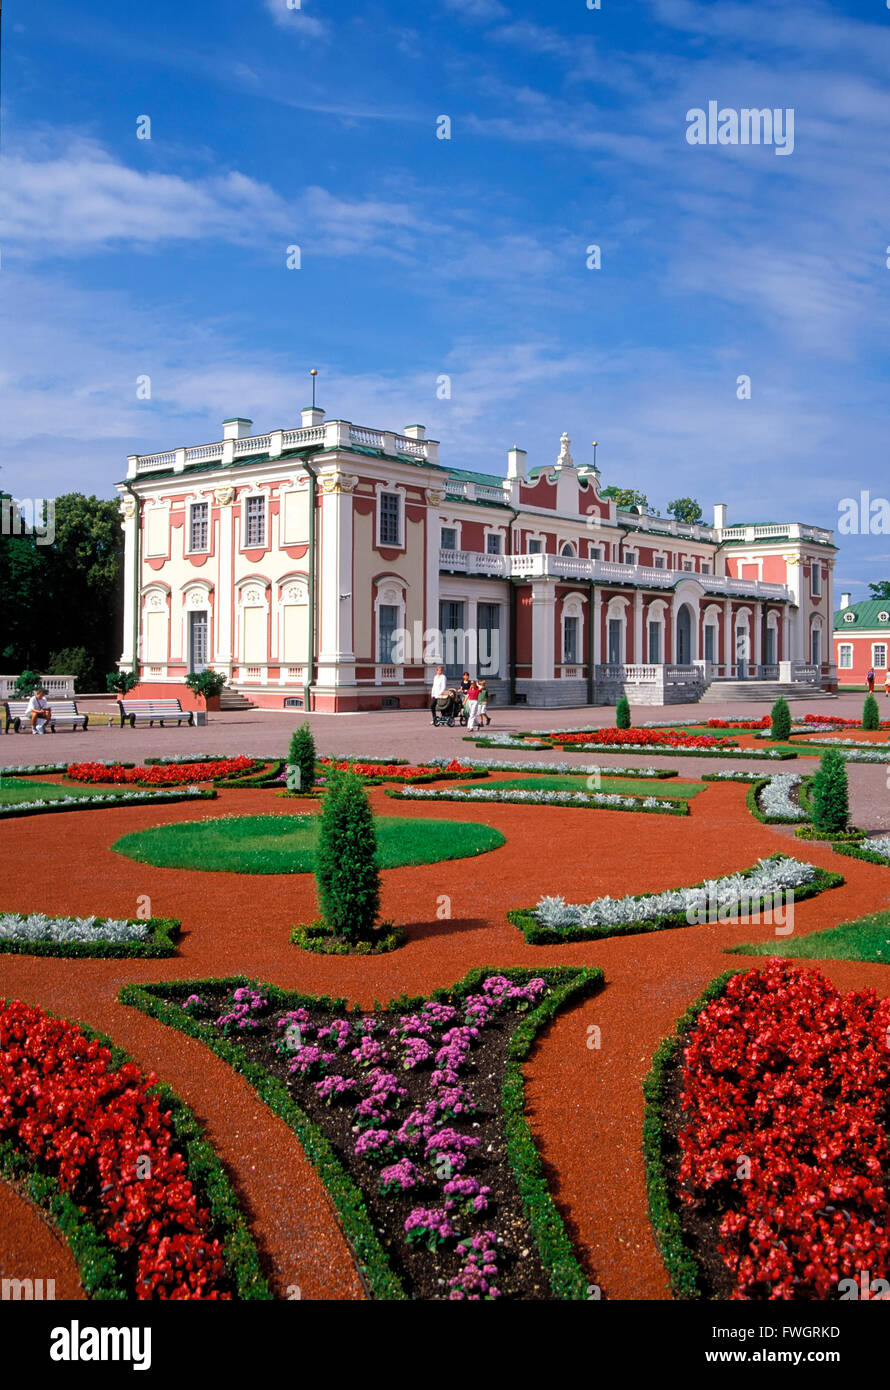 Kadriorg castle, Tallinn, Estonia, Europe - Stock Image